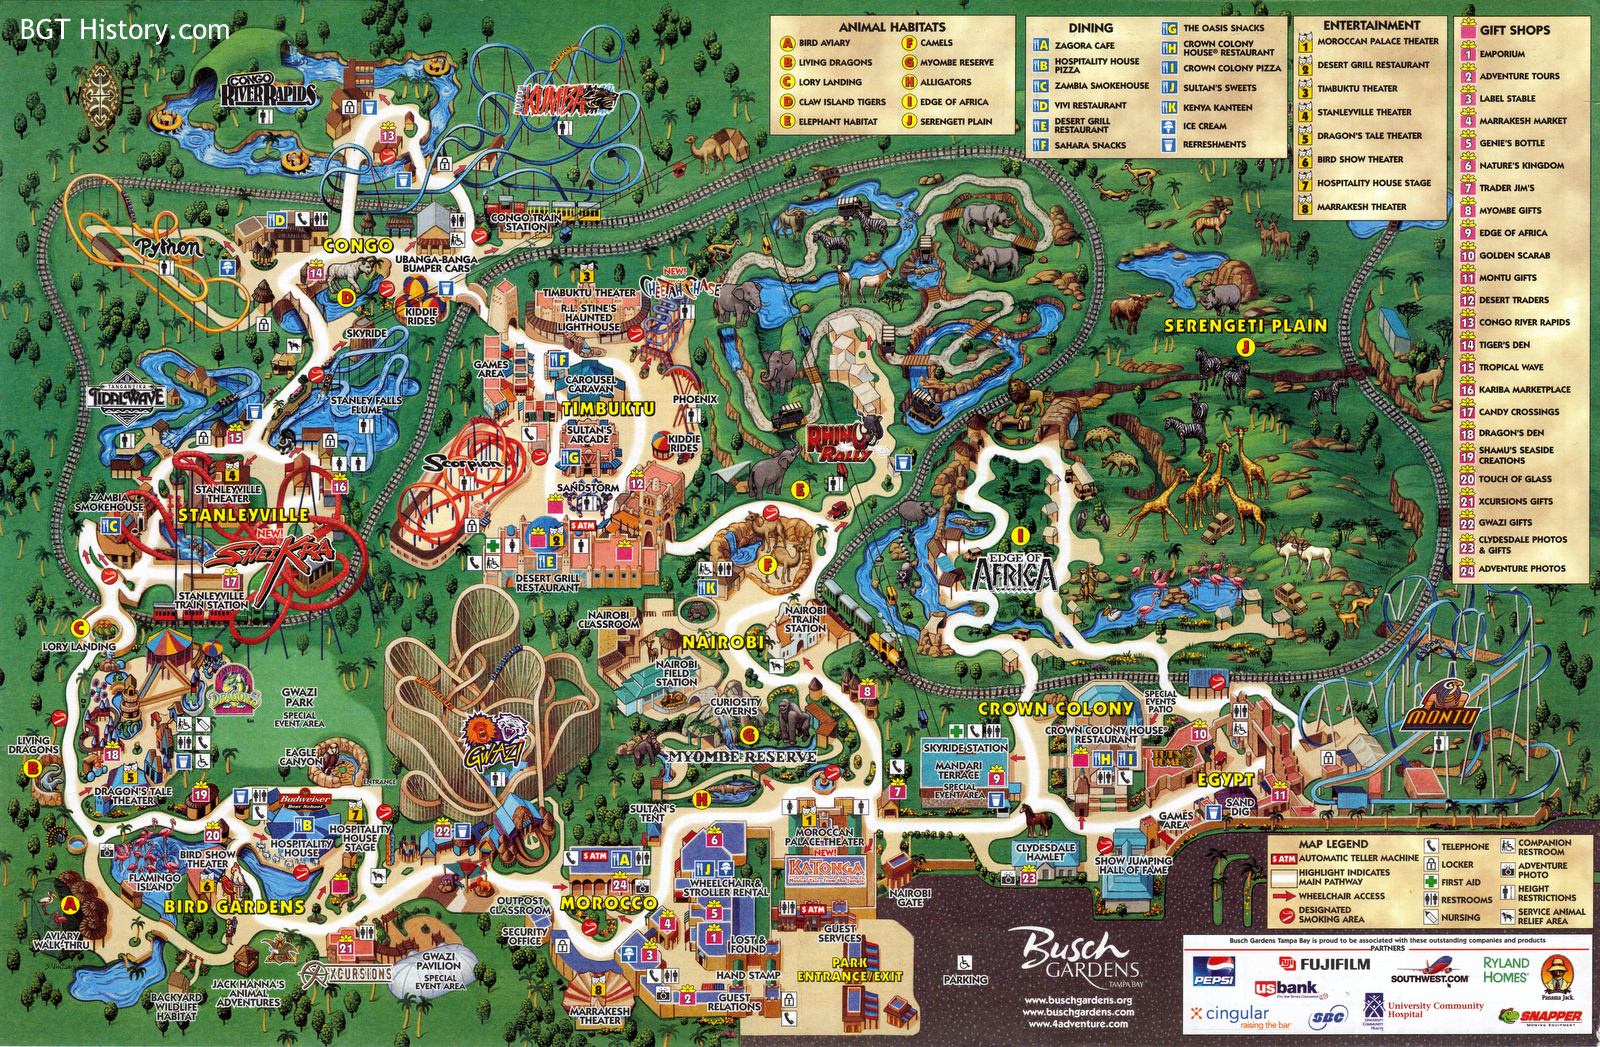 Maps   BGT History   Busch Gardens Tampa History 2005     May